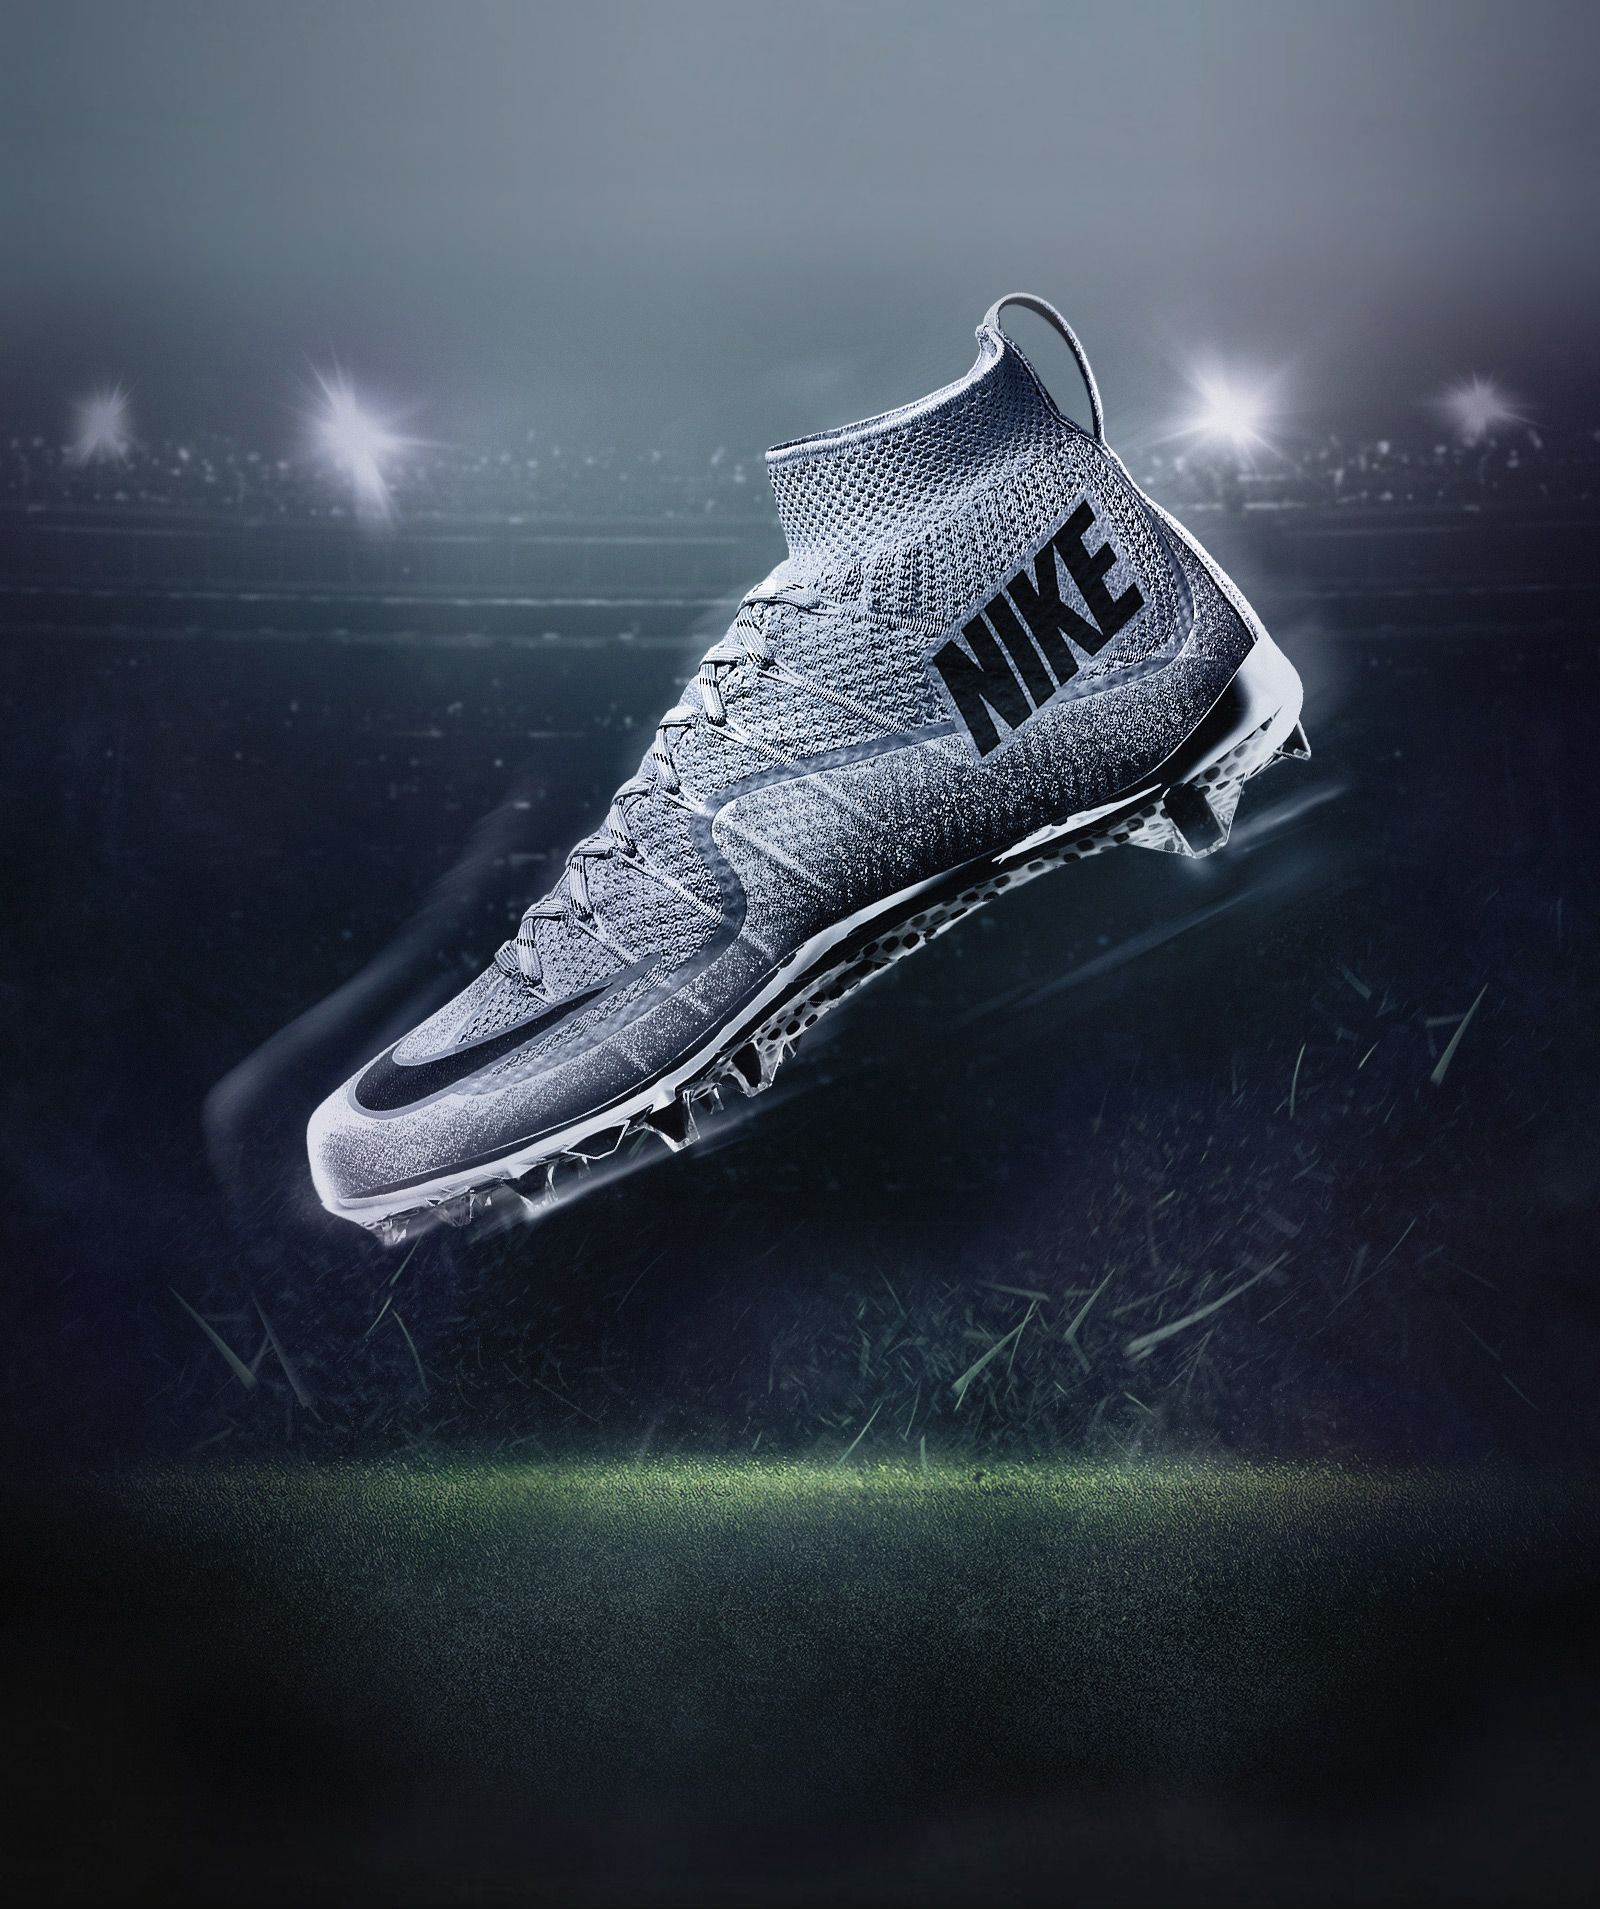 Nike VAPOR UNTOUCHABLE - possible buy for flag football this spring!